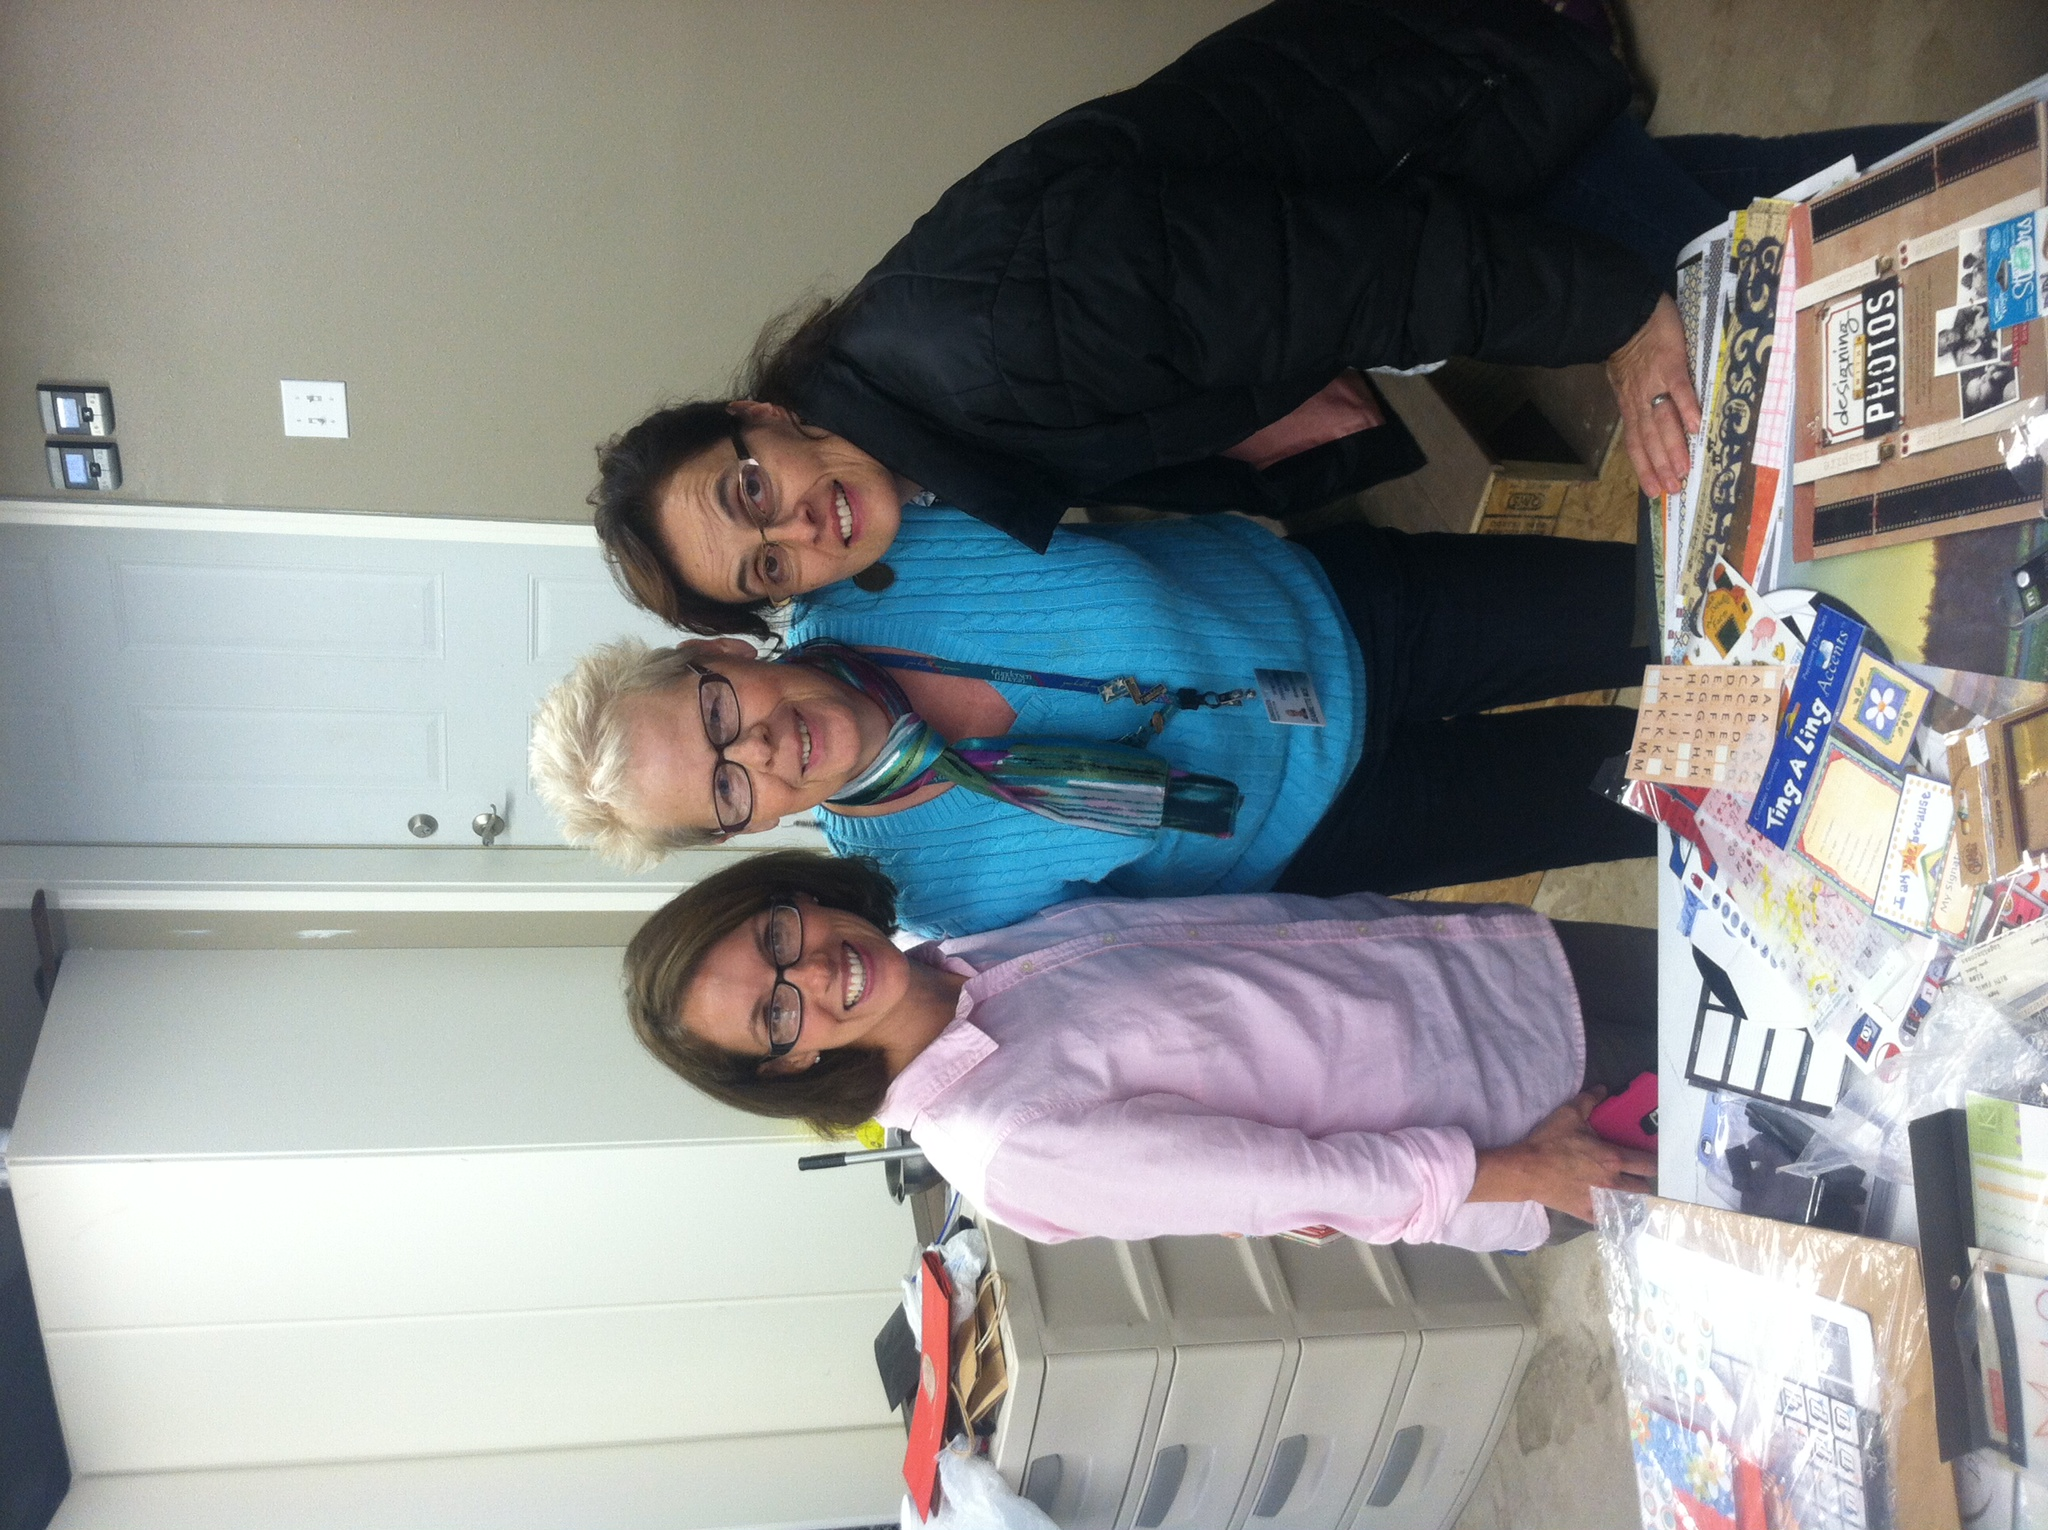 Travis's aunt+ planner of this entire event, Jenn {left}, Family friend, Jeannette {middle}, Travis's mom, Kaye {right}